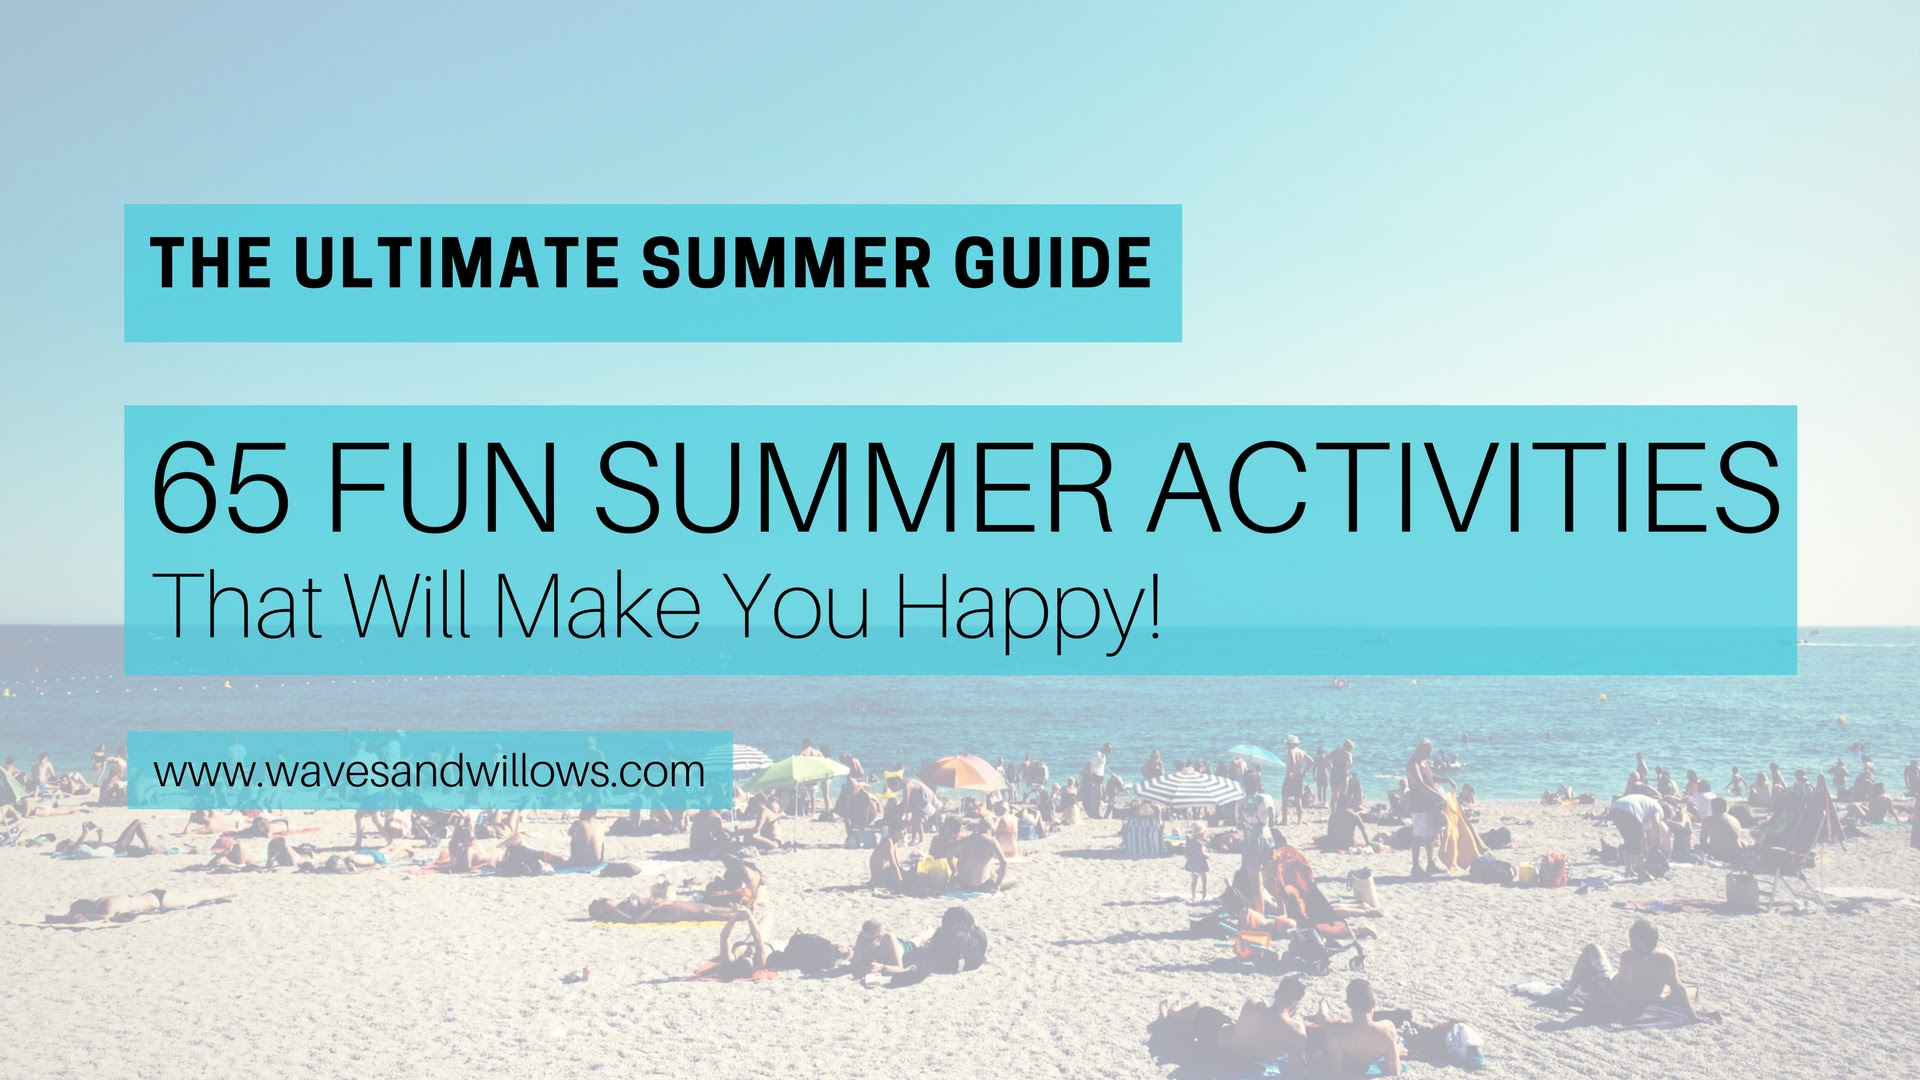 65 Fun Summer Activities That Will Make You Happy 2017